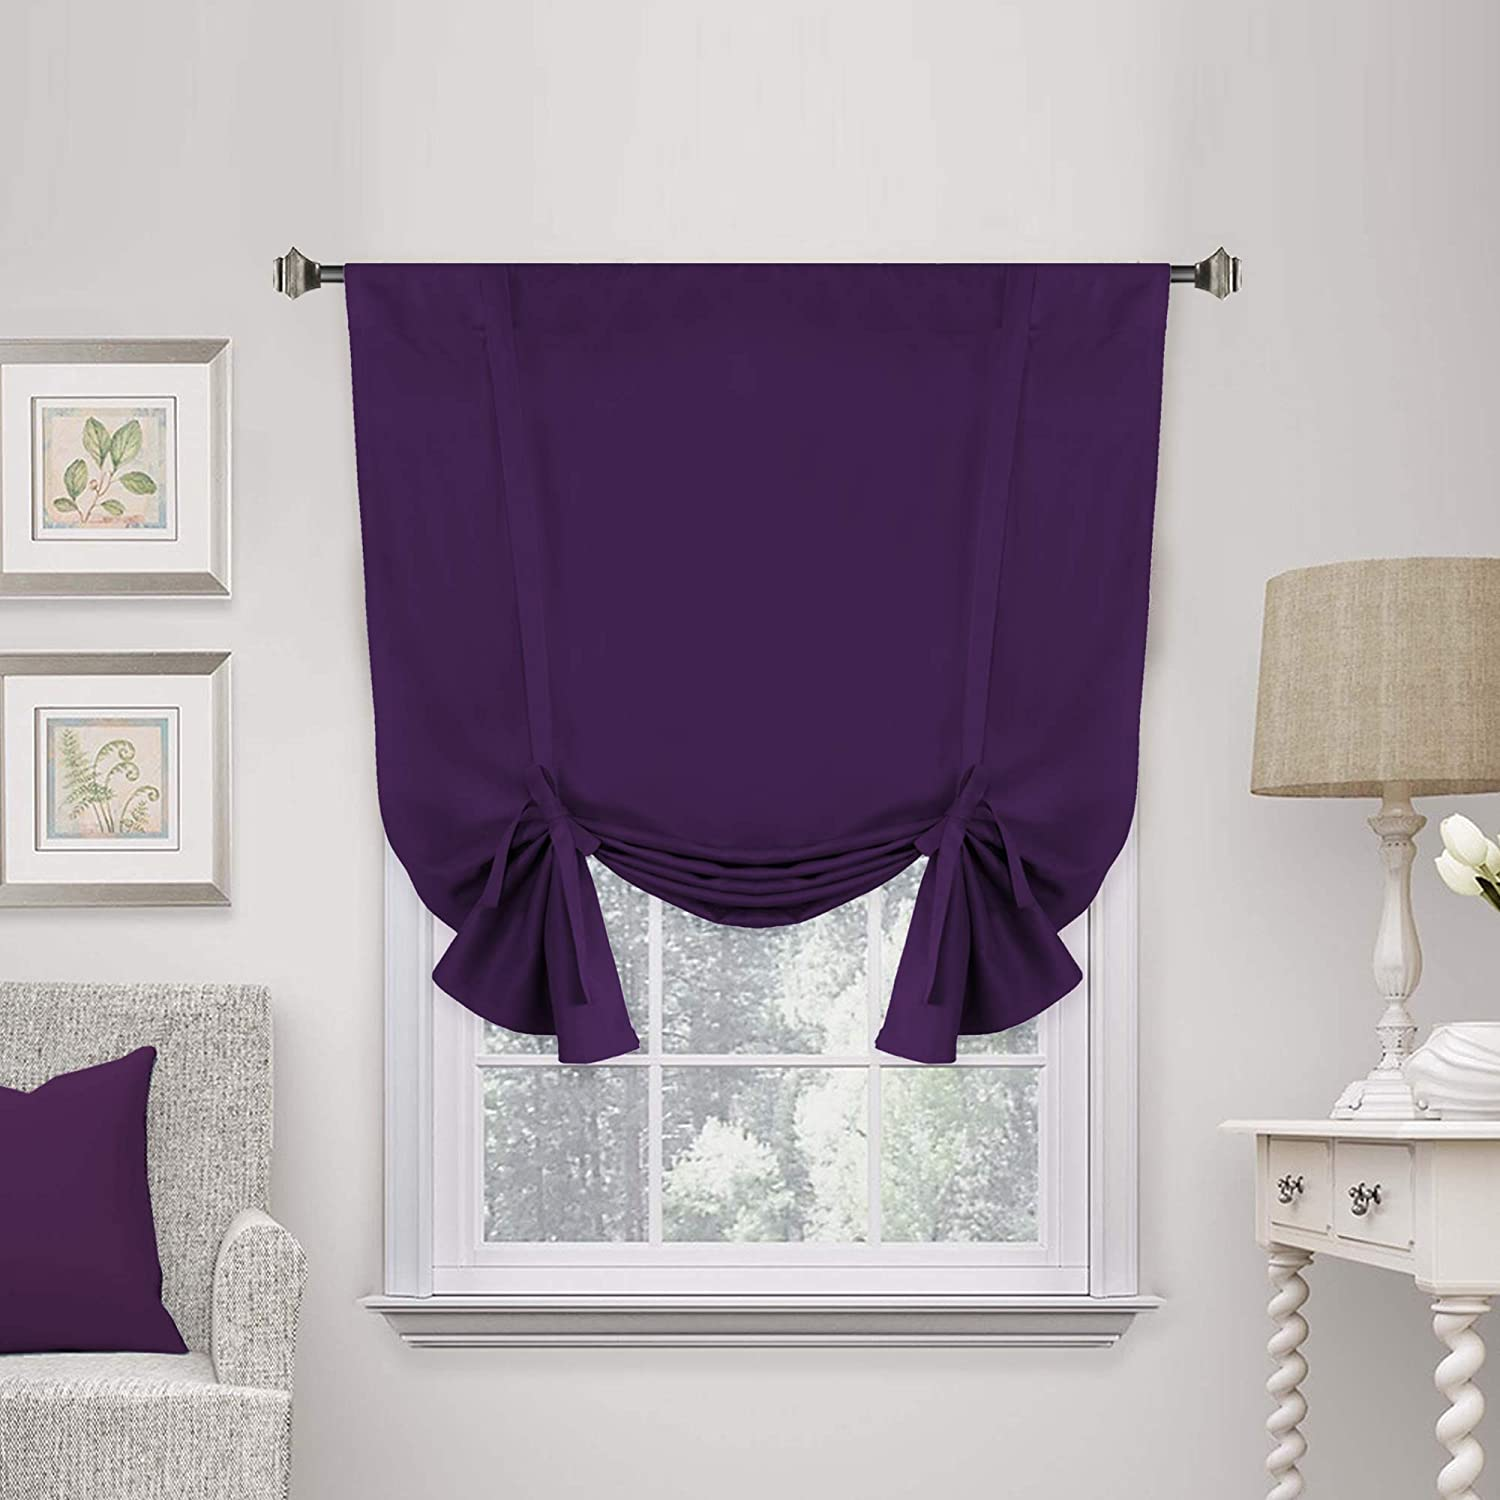 "H.Versailtex Blackout Innovated Tie Up Shade & Curtain (Thermal Insulated Rod Pocket Curtain Panel)-42"" Wide by 63"" Long - Solid in Plum Purple"